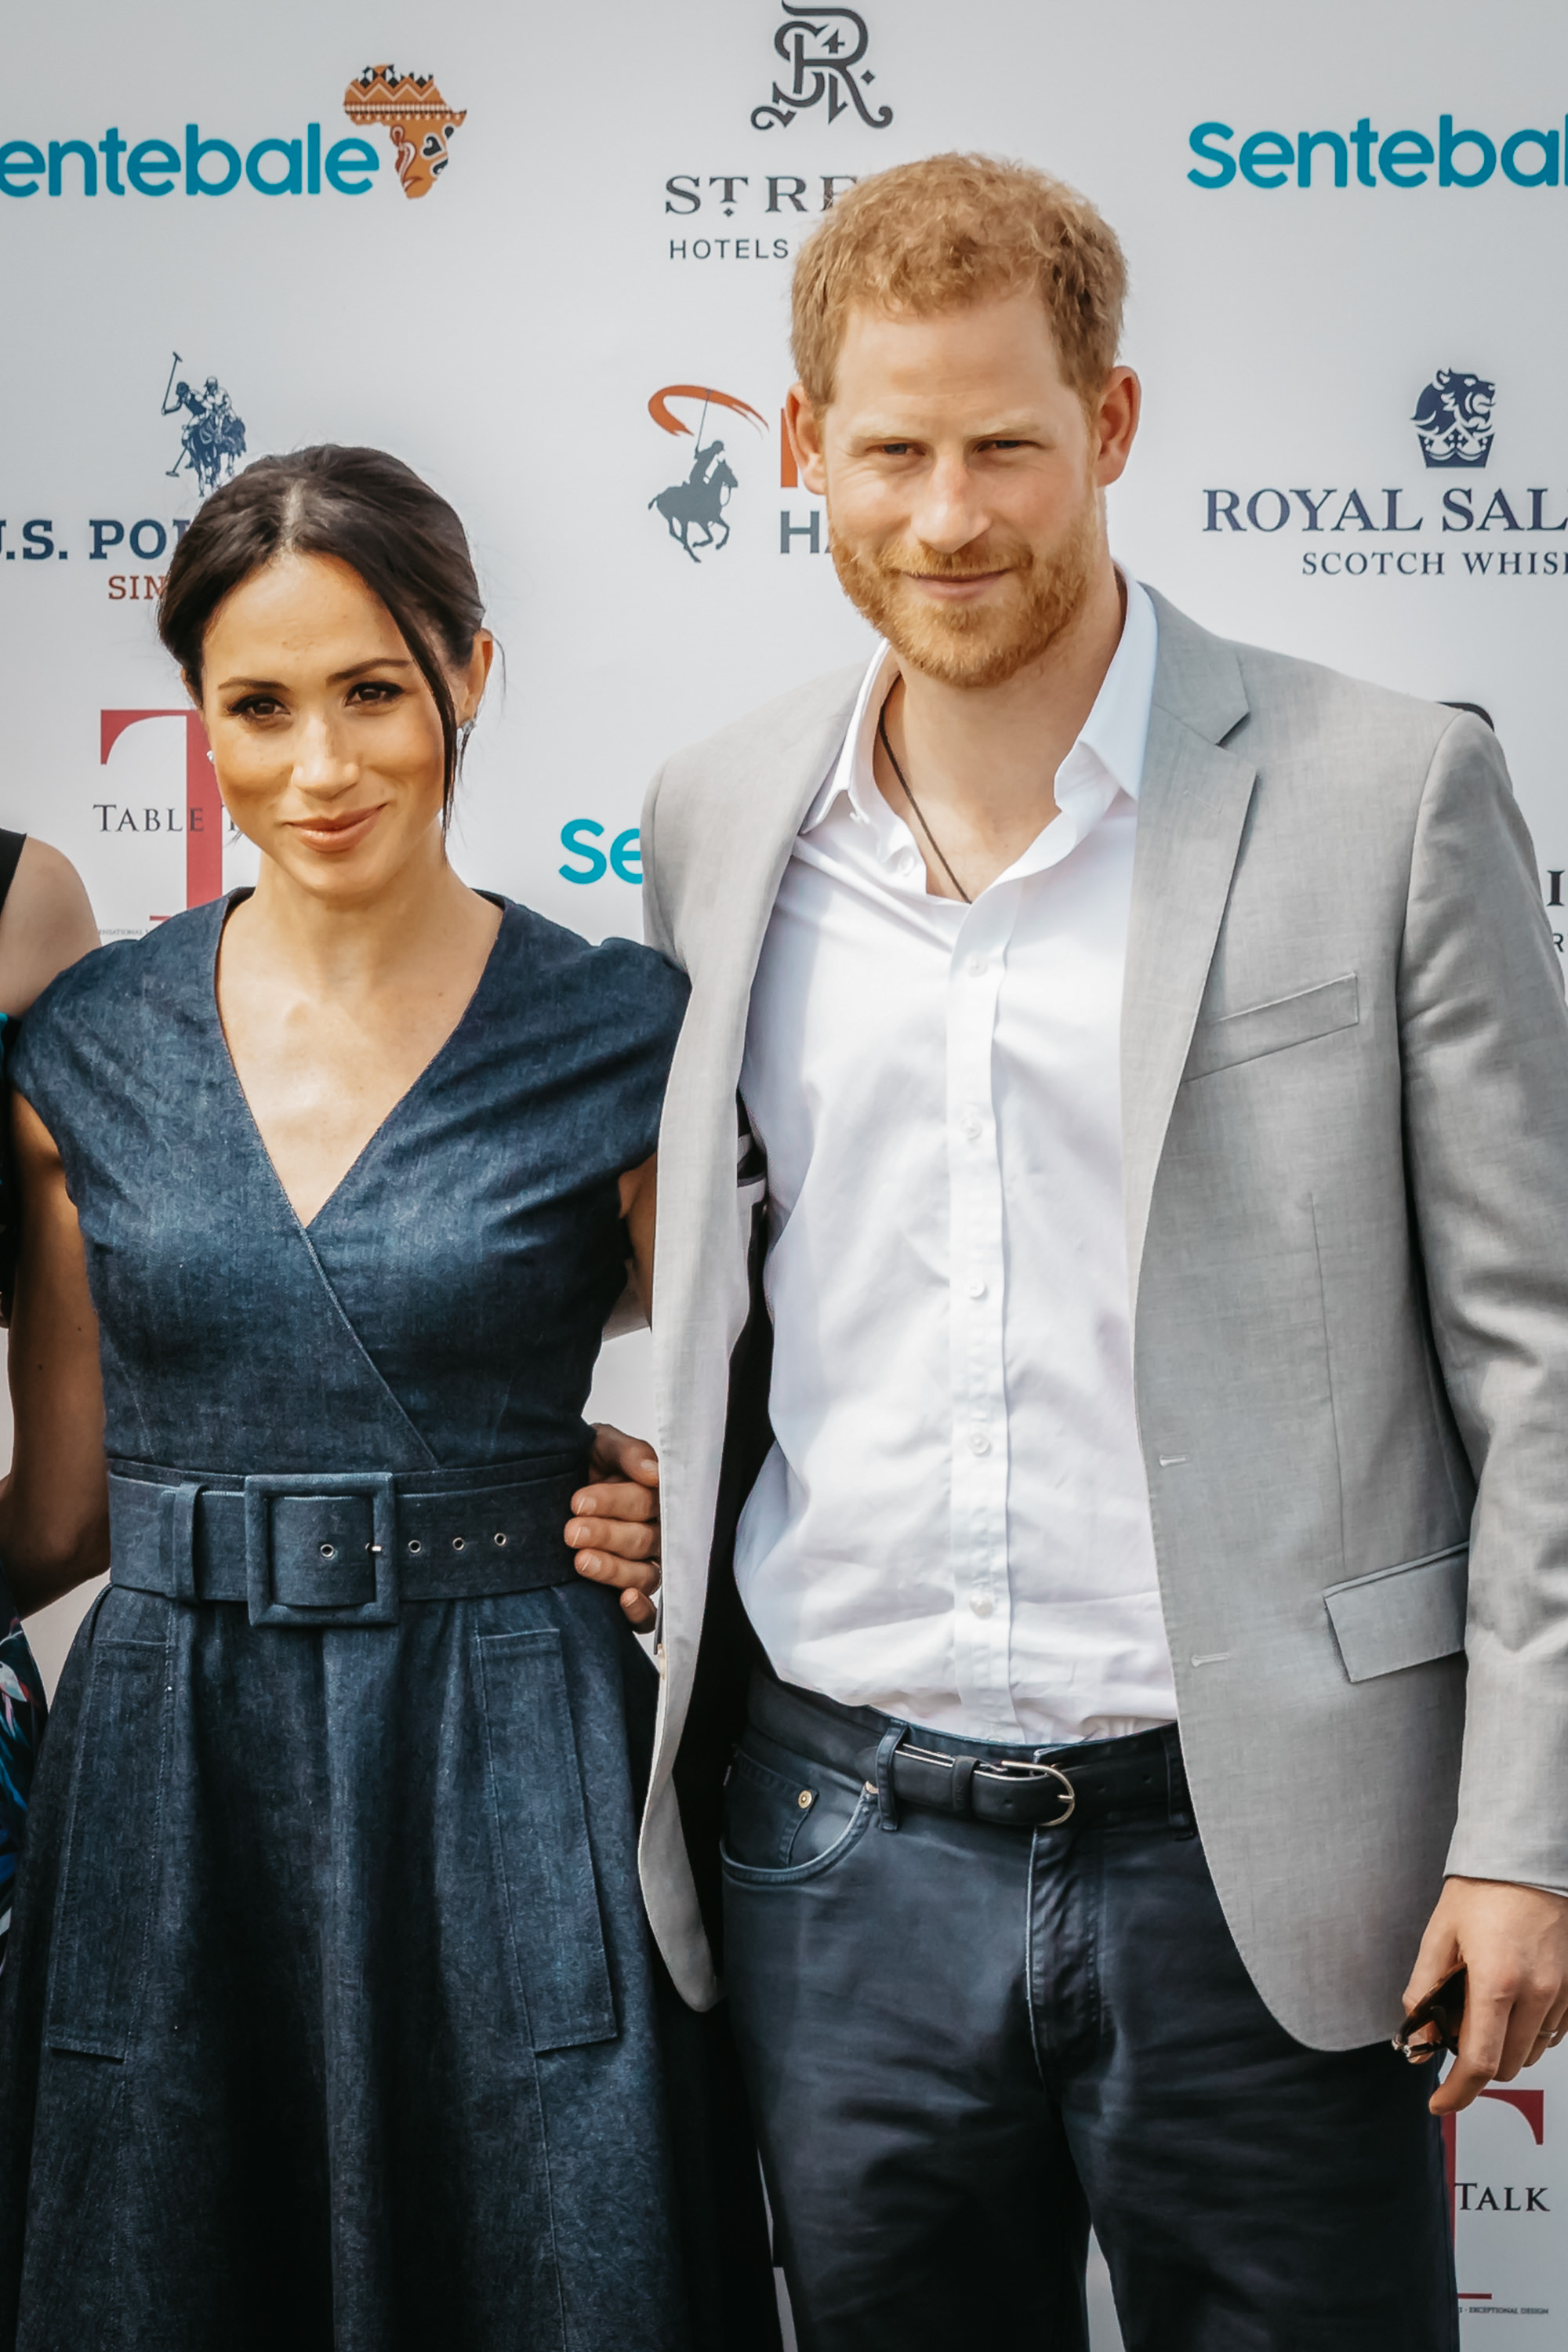 Duke and Dutchess of Sussex